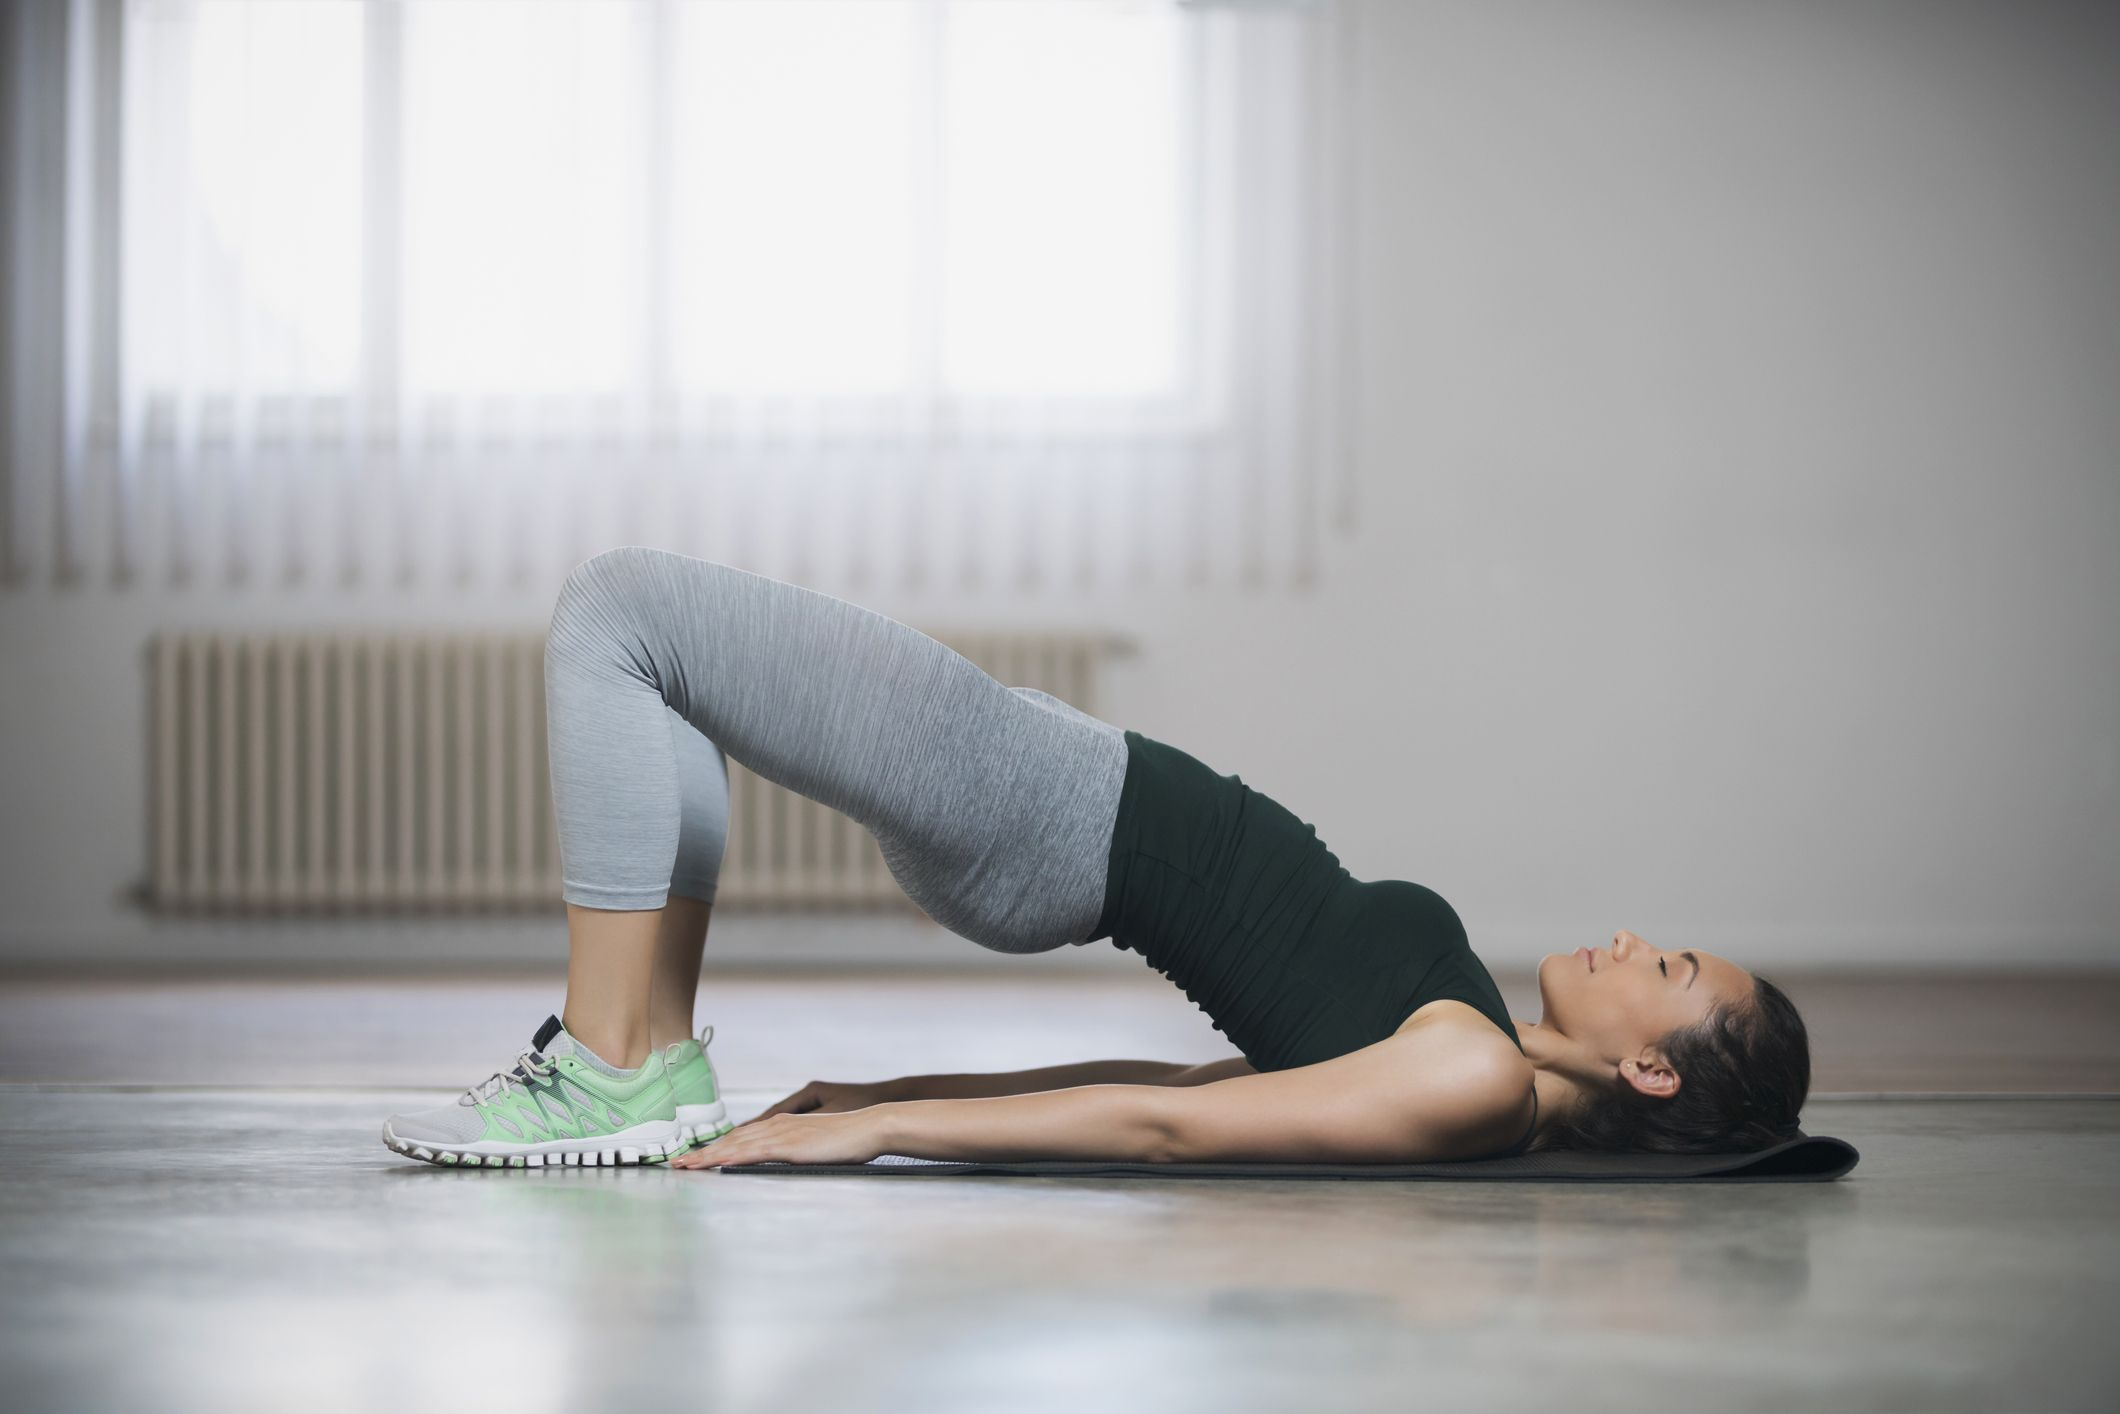 13 Butt Exercises to Build Stronger Glutes, According to Personal Trainers